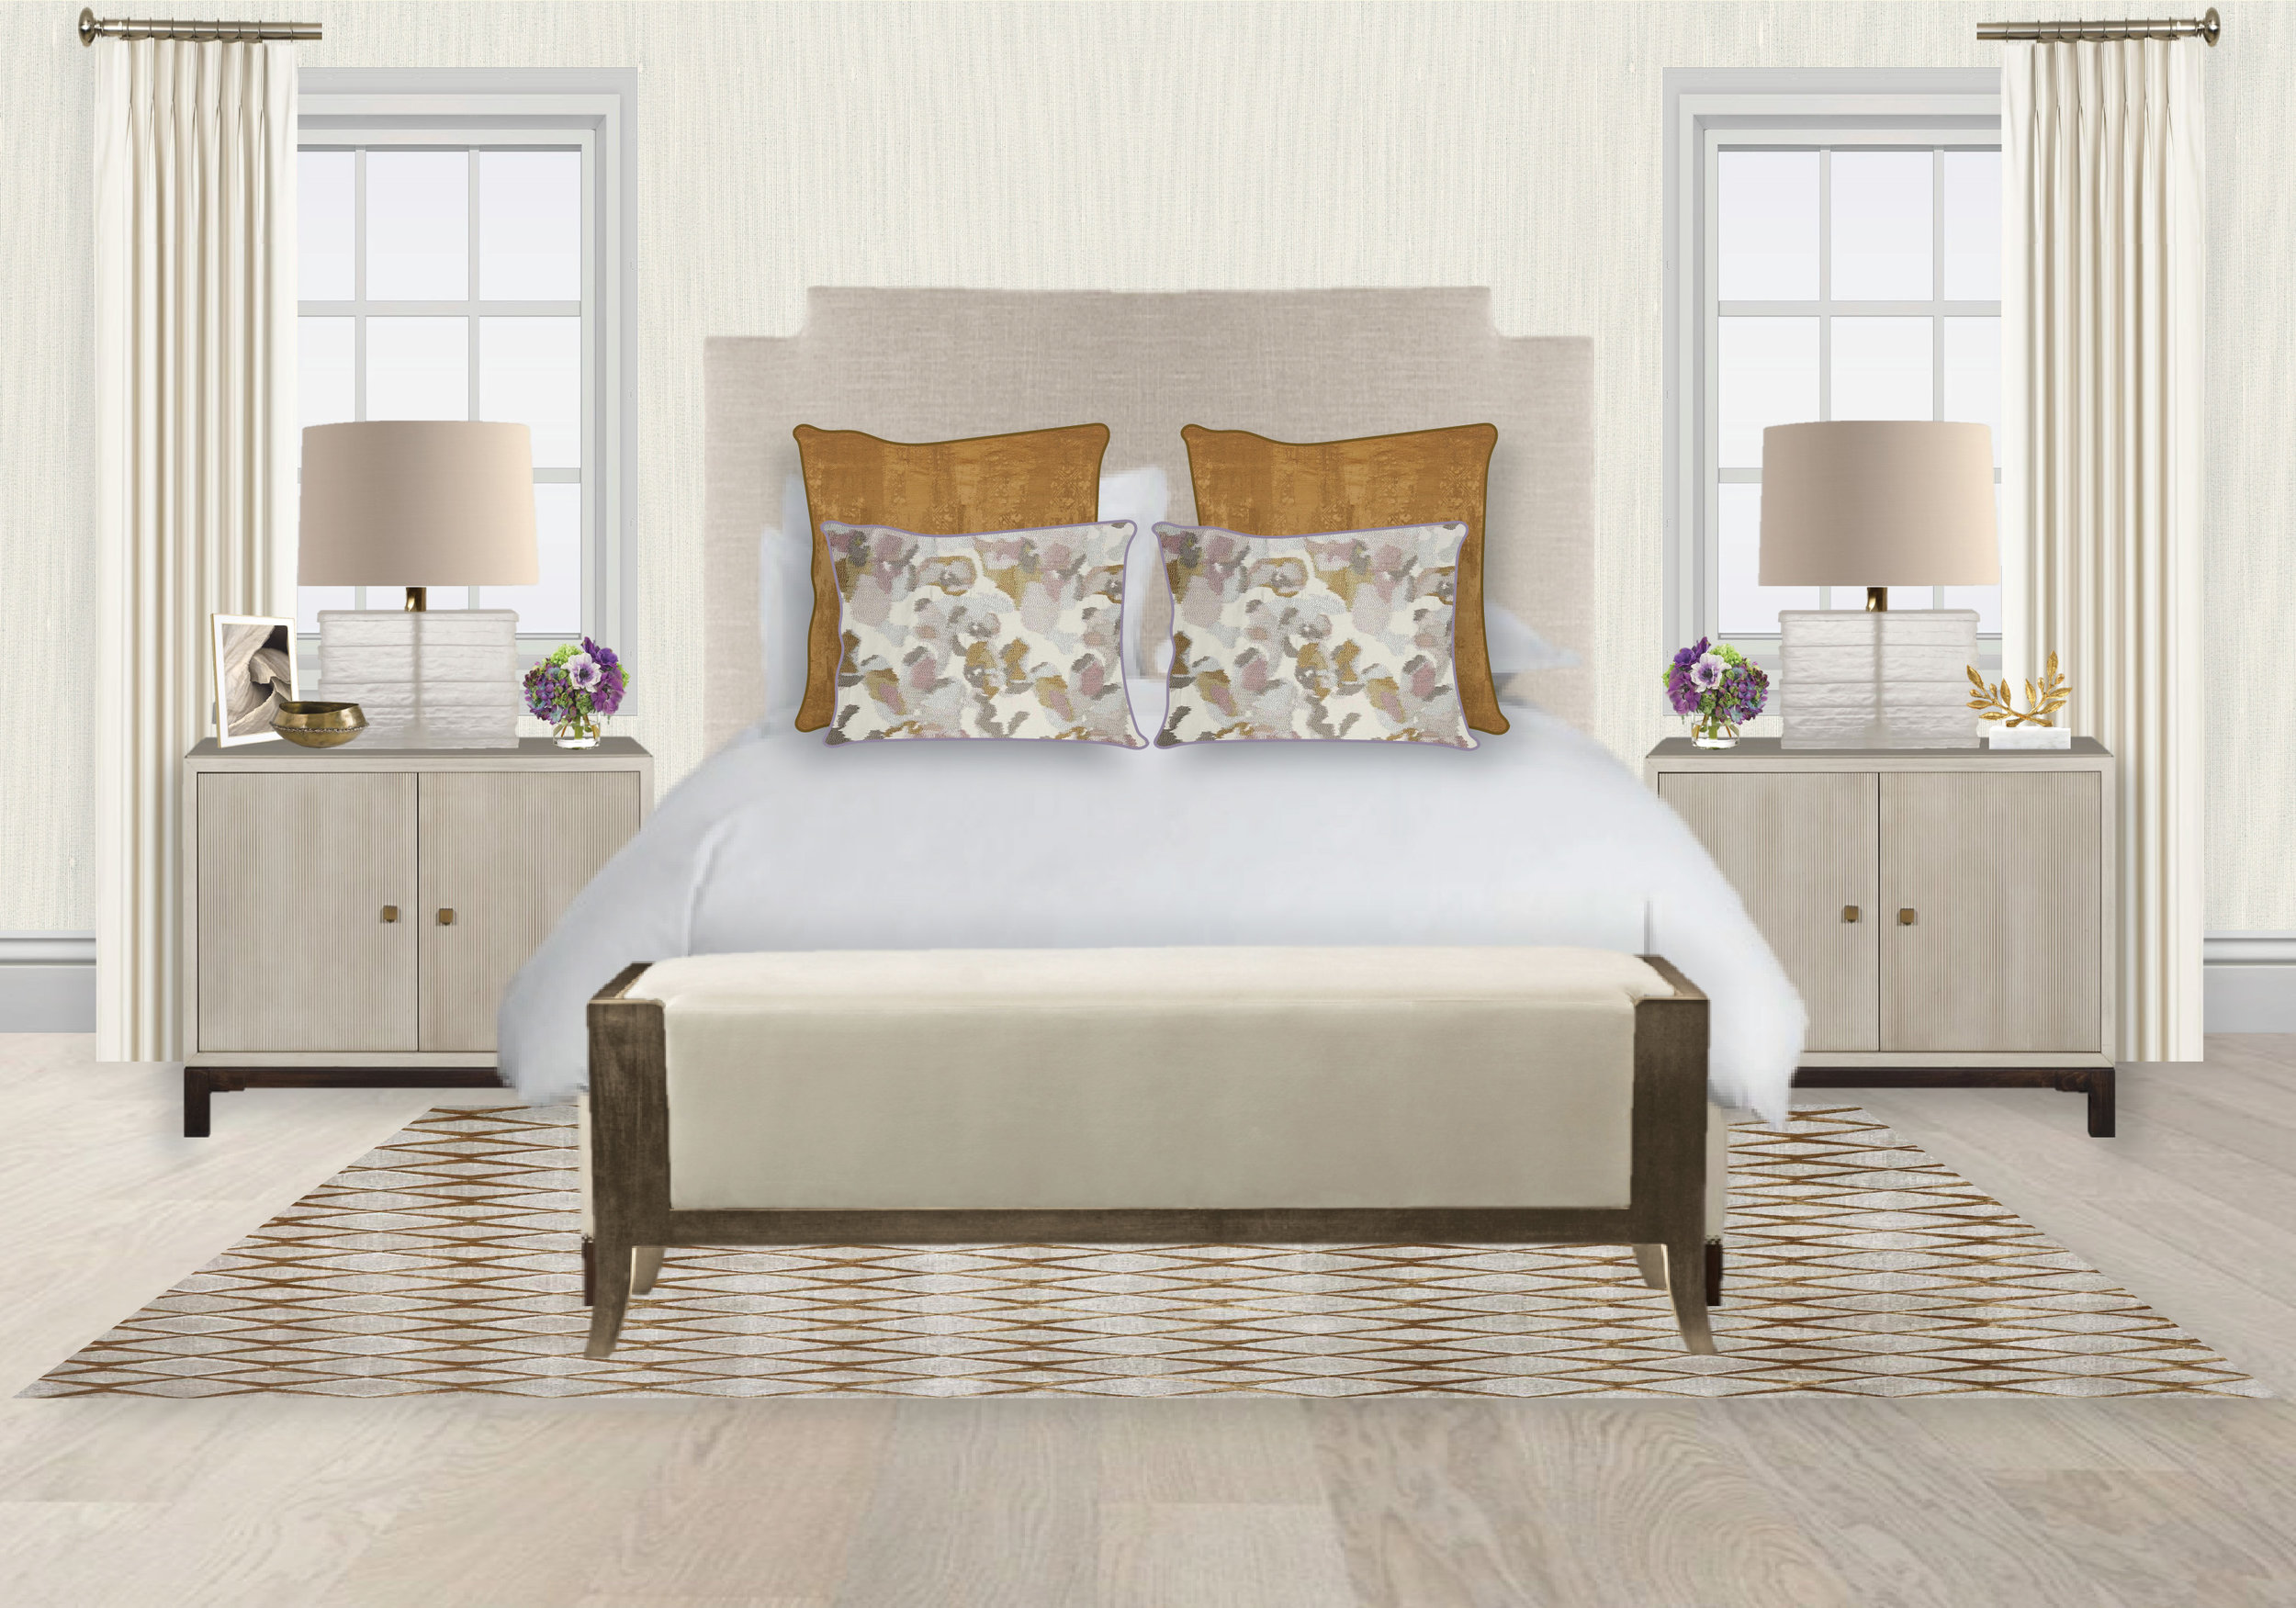 Spring Bedroom by Synonymous | Synonymouss.com